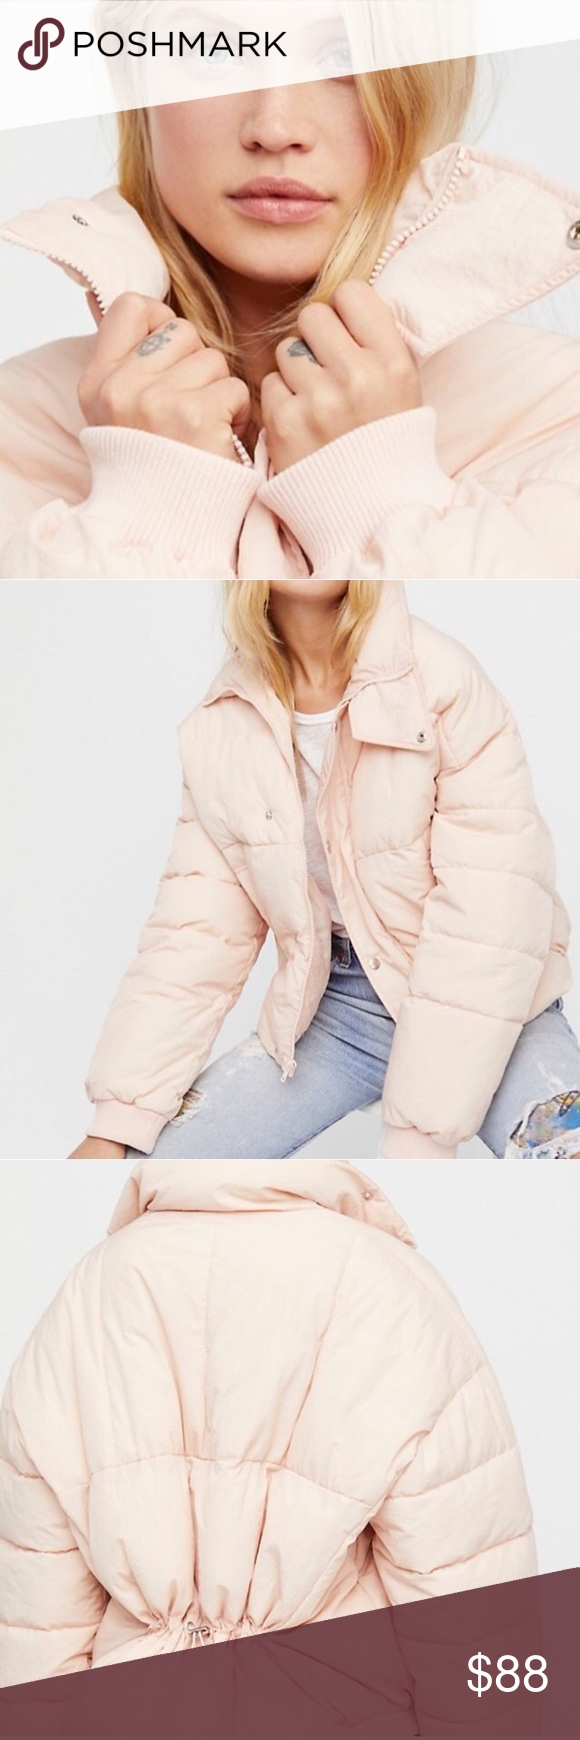 Free People Cold Rush Puffer Coat Baby Pink Jacket Pink Jacket Puffer Coat Jackets [ 1740 x 580 Pixel ]